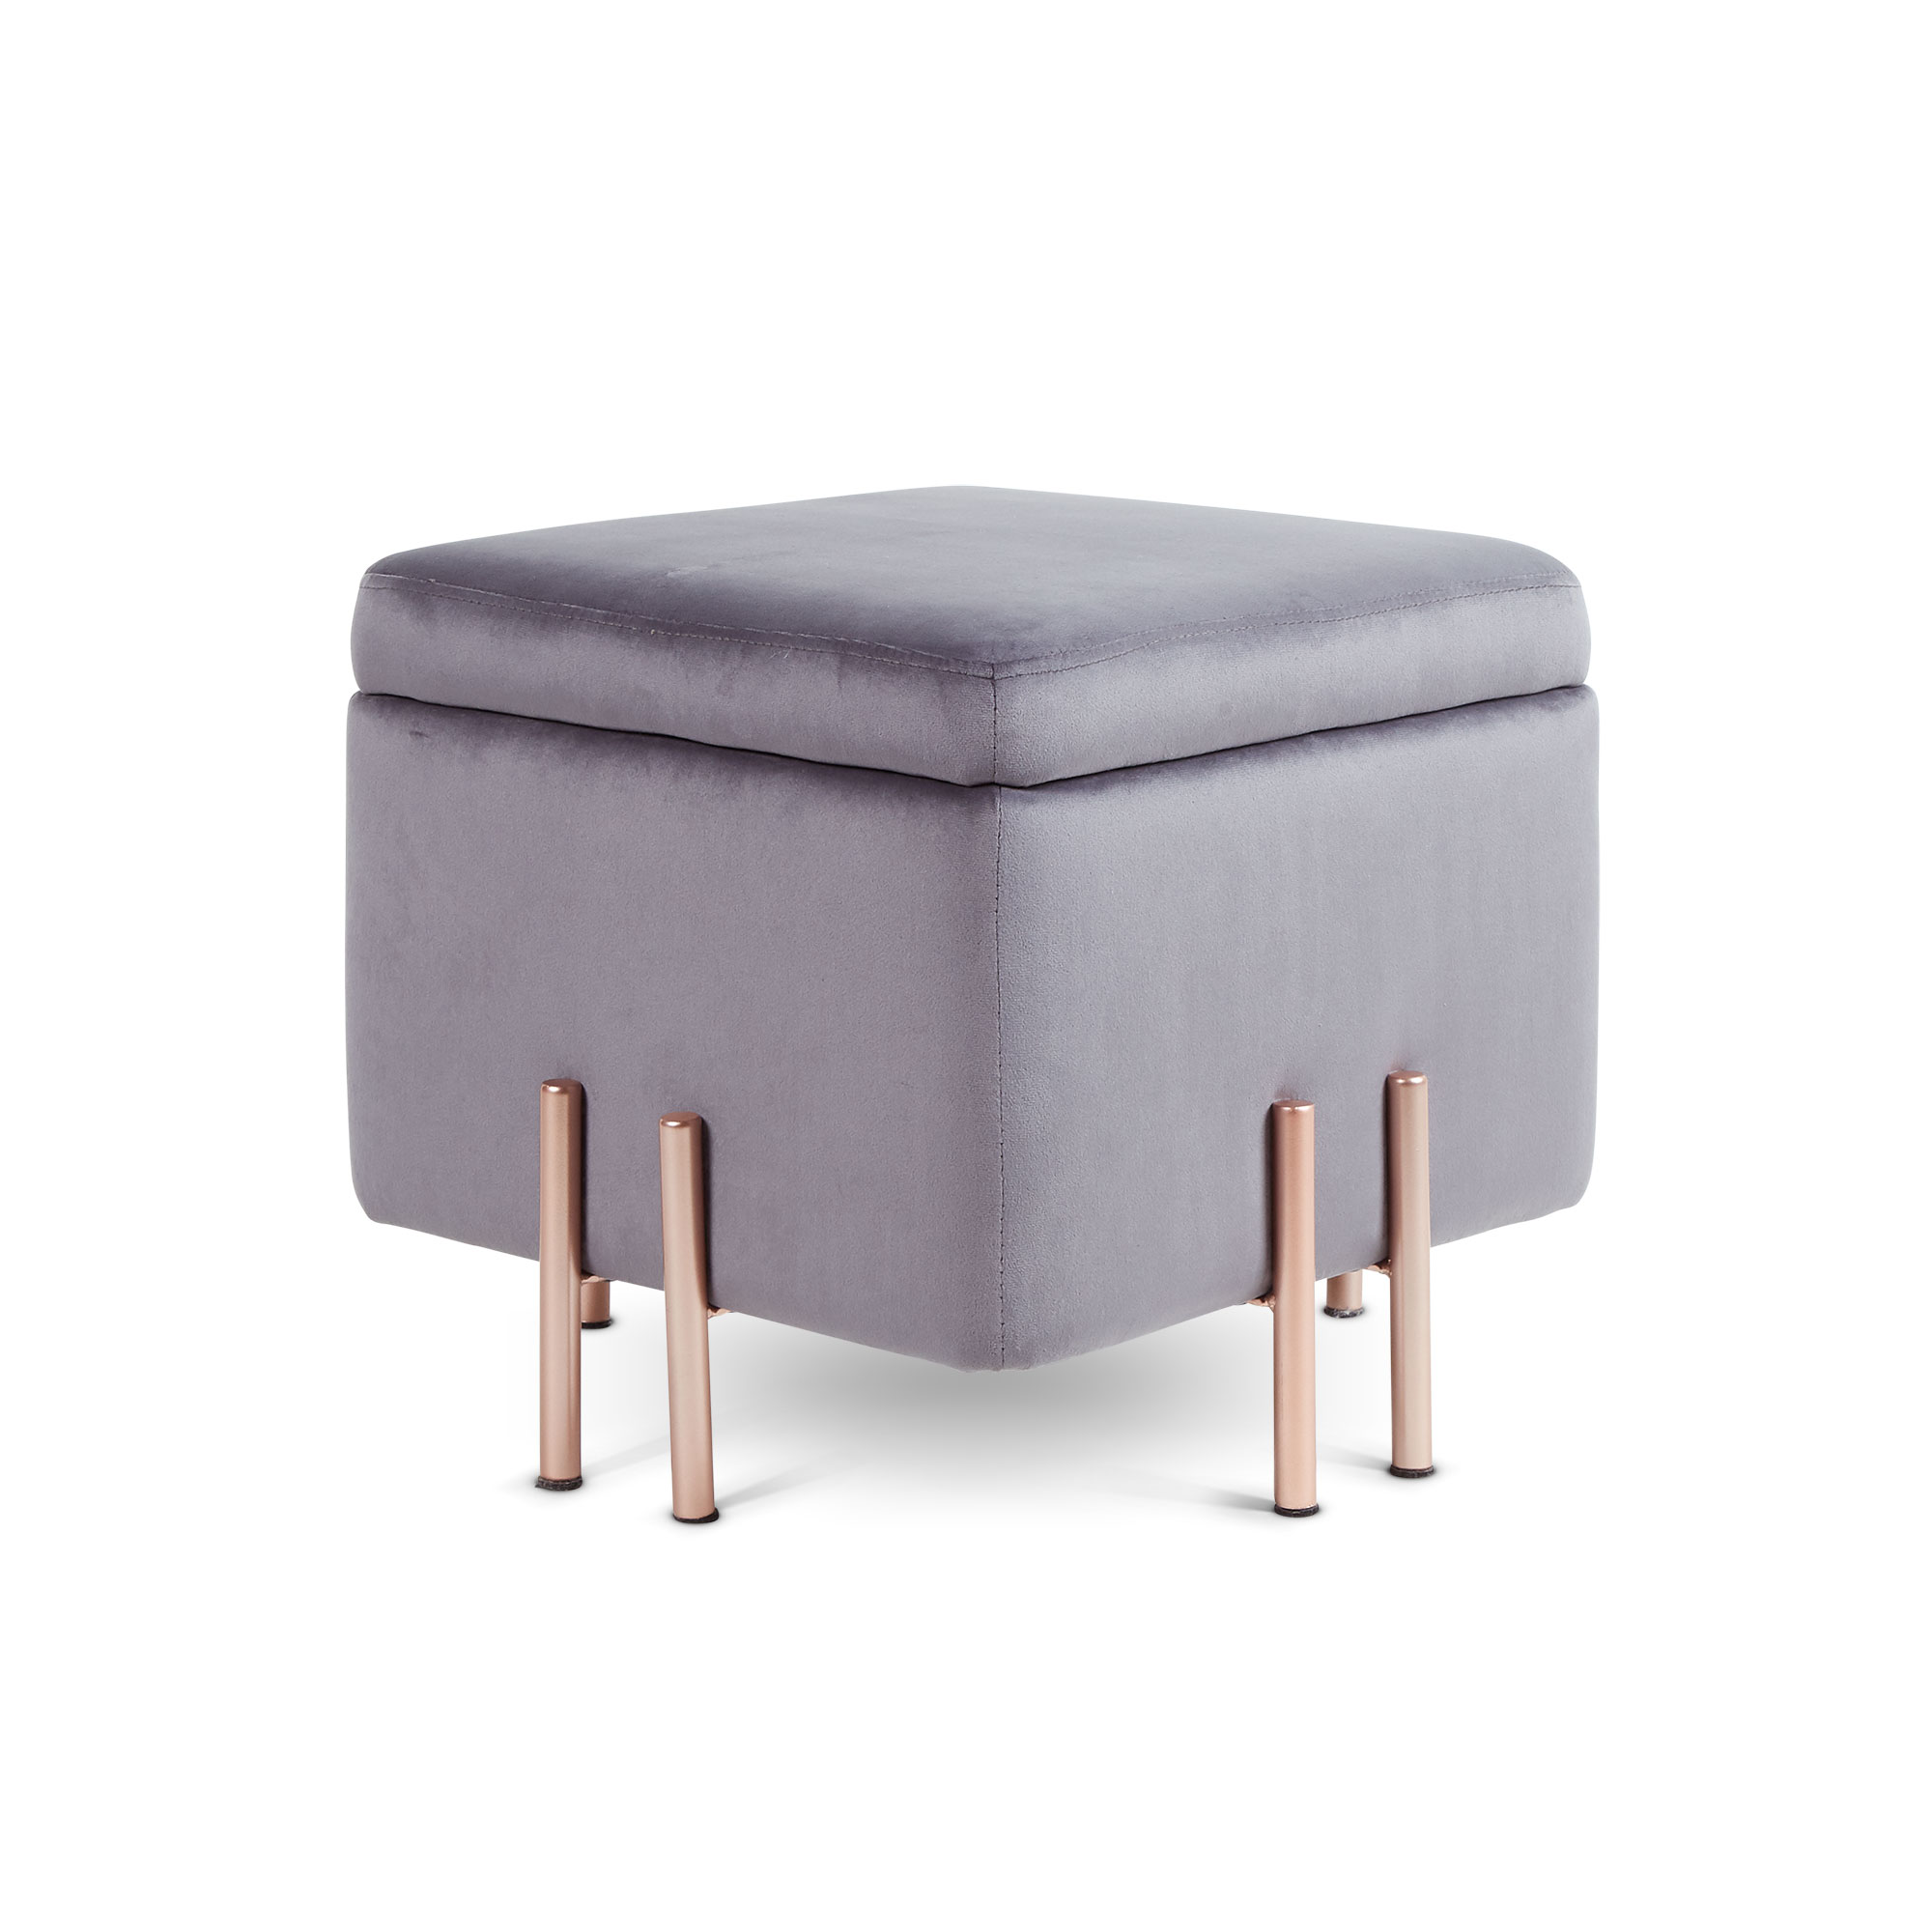 Pleasing Details About Beautify Grey Velvet Square Storage Stool Ottoman With Rose Gold Legs Gmtry Best Dining Table And Chair Ideas Images Gmtryco